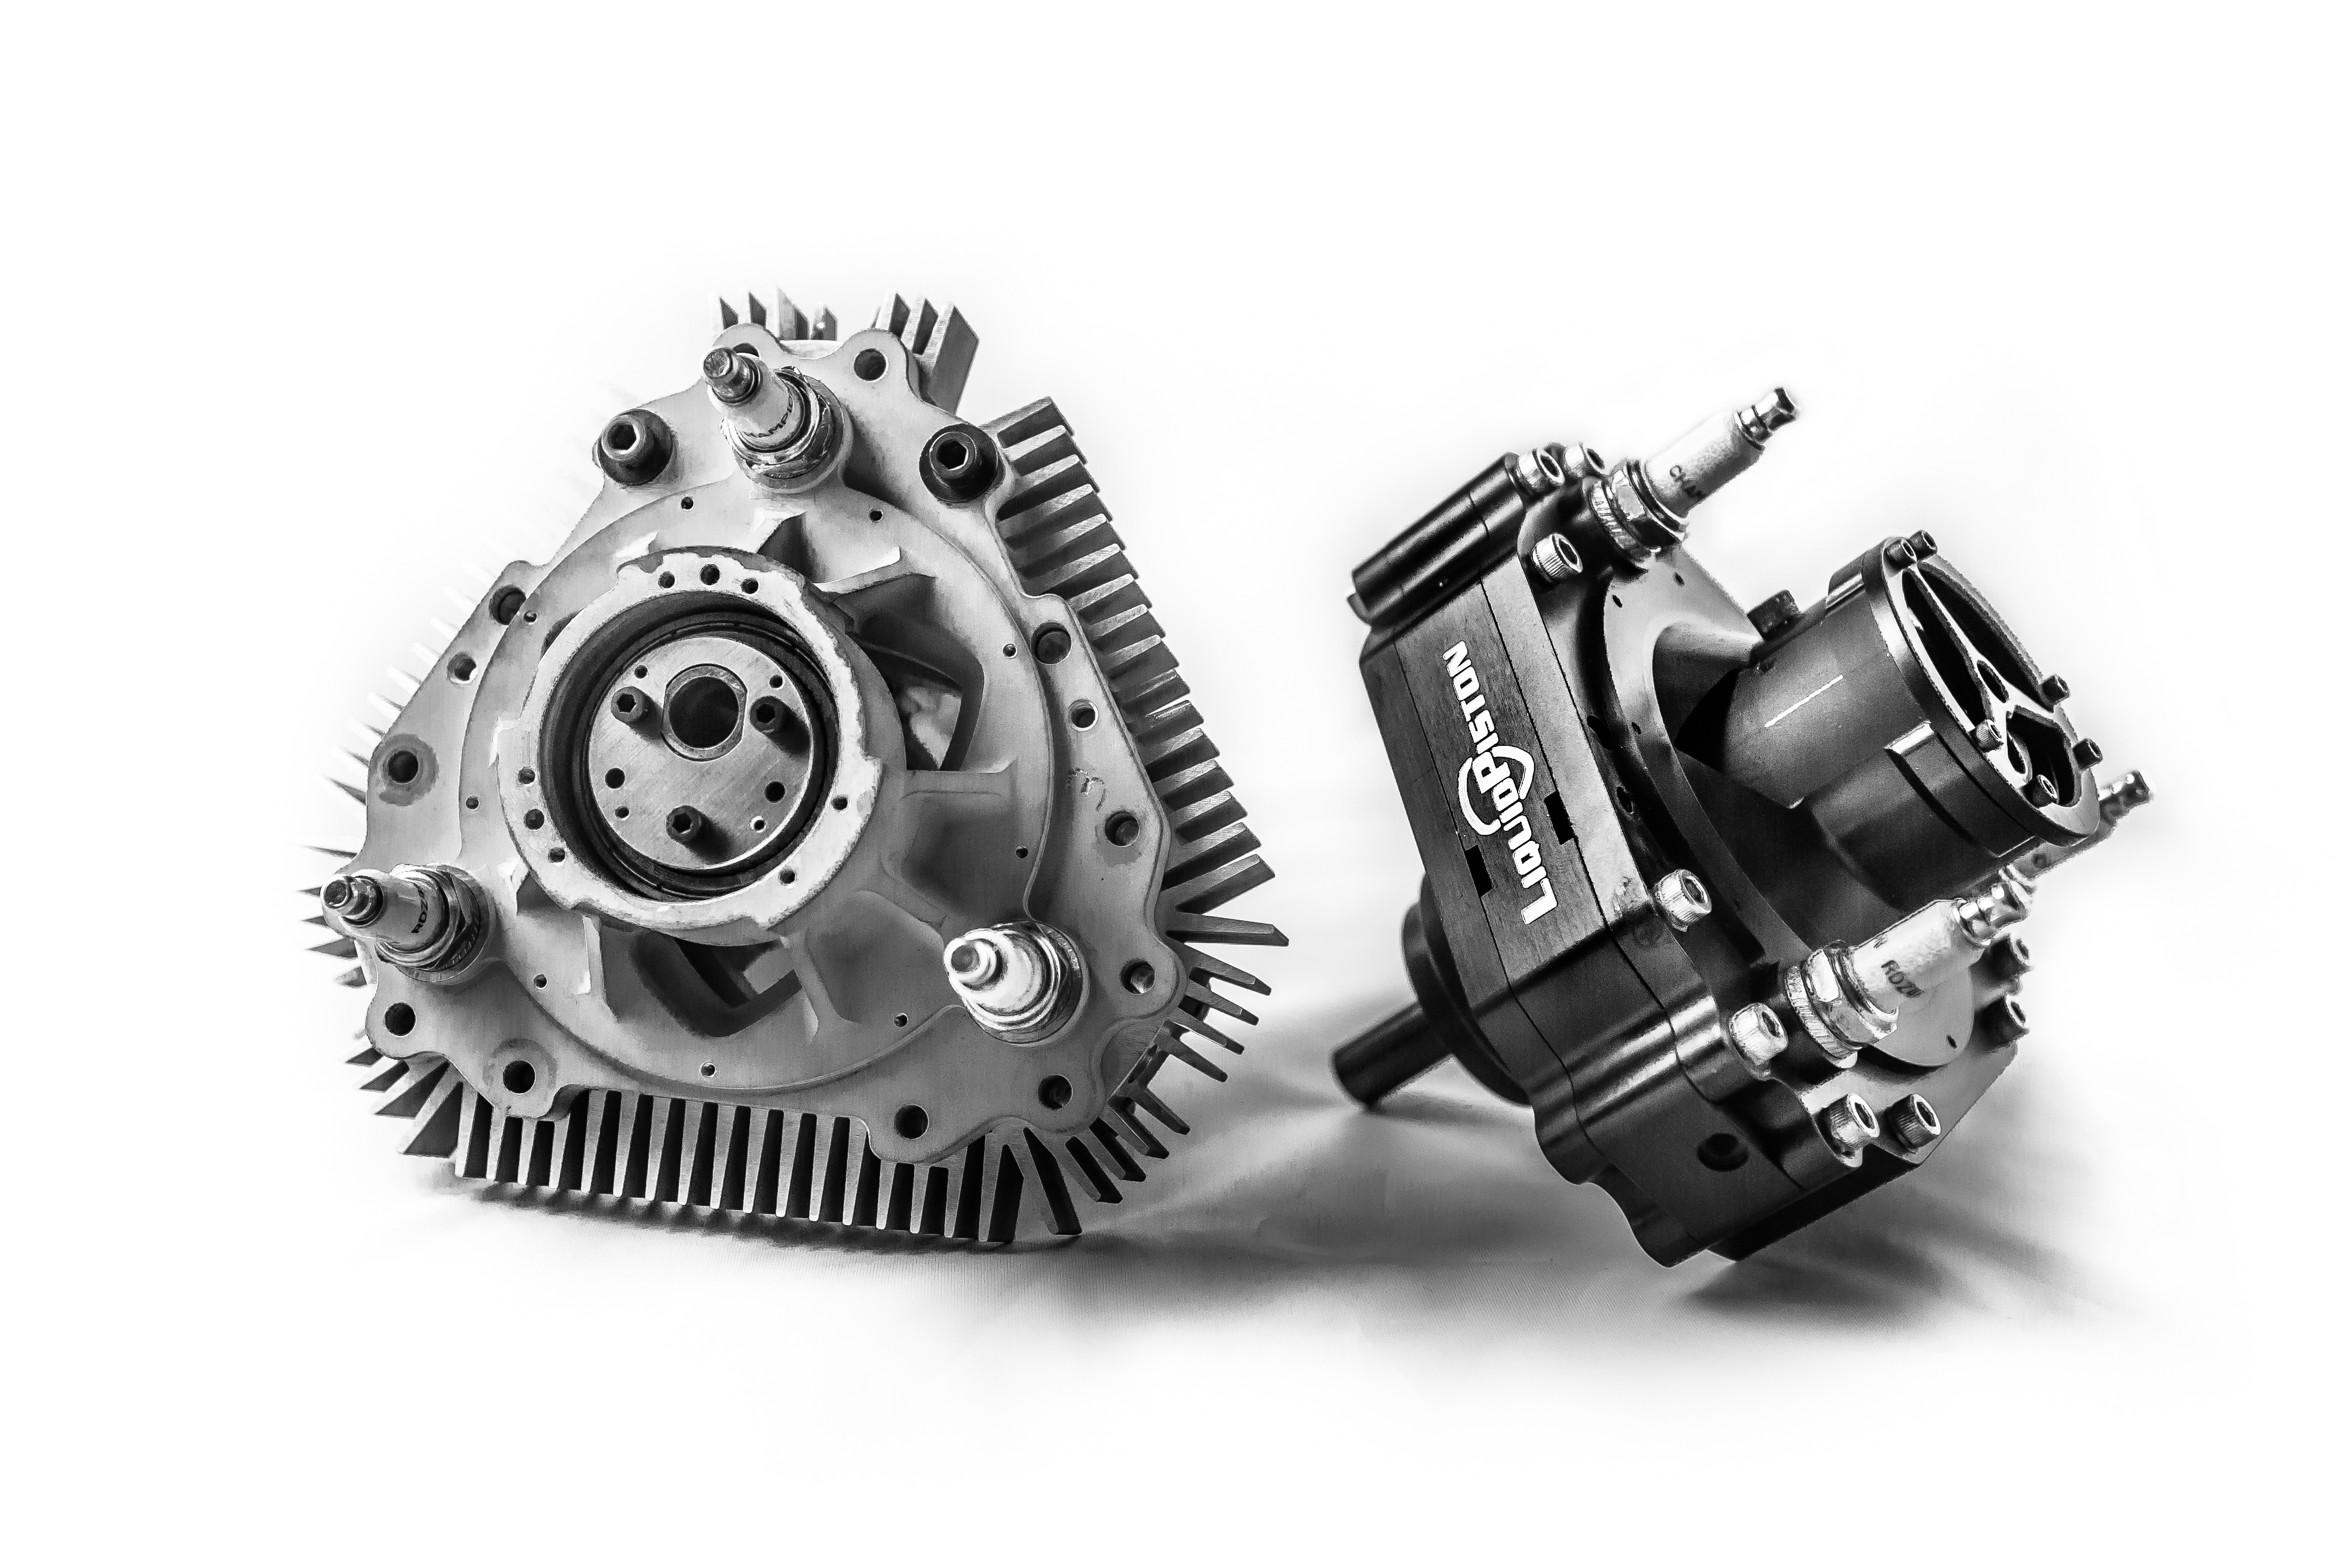 LiquidPiston has signed a $1 million agreement with DARPA to advance the development of its highly efficient, power-dense rotary internal combustion engine, the X Mini (pictured here). The company seeks to increase fuel efficiency and power density in military engines. (Photo: Business Wire)